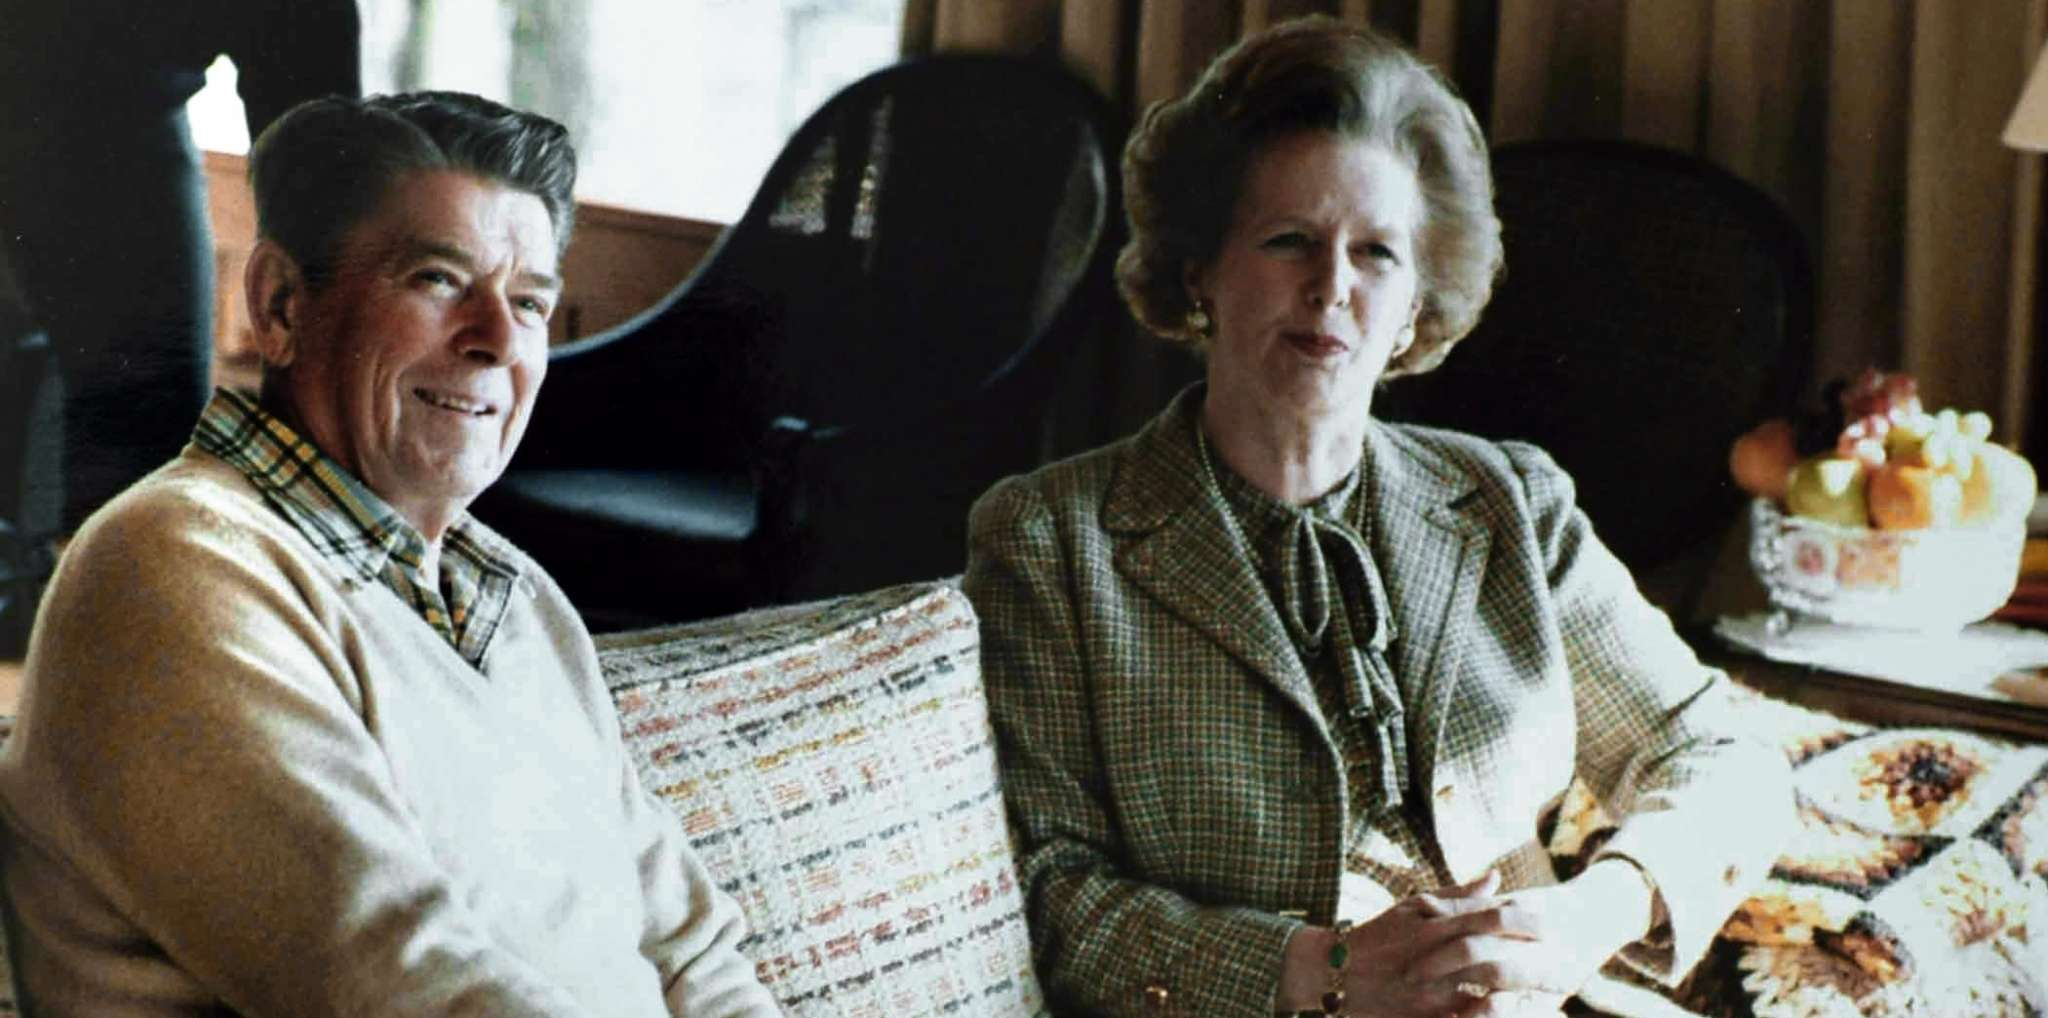 Thatcher's International Legacy: Why We're Still Talking About Her